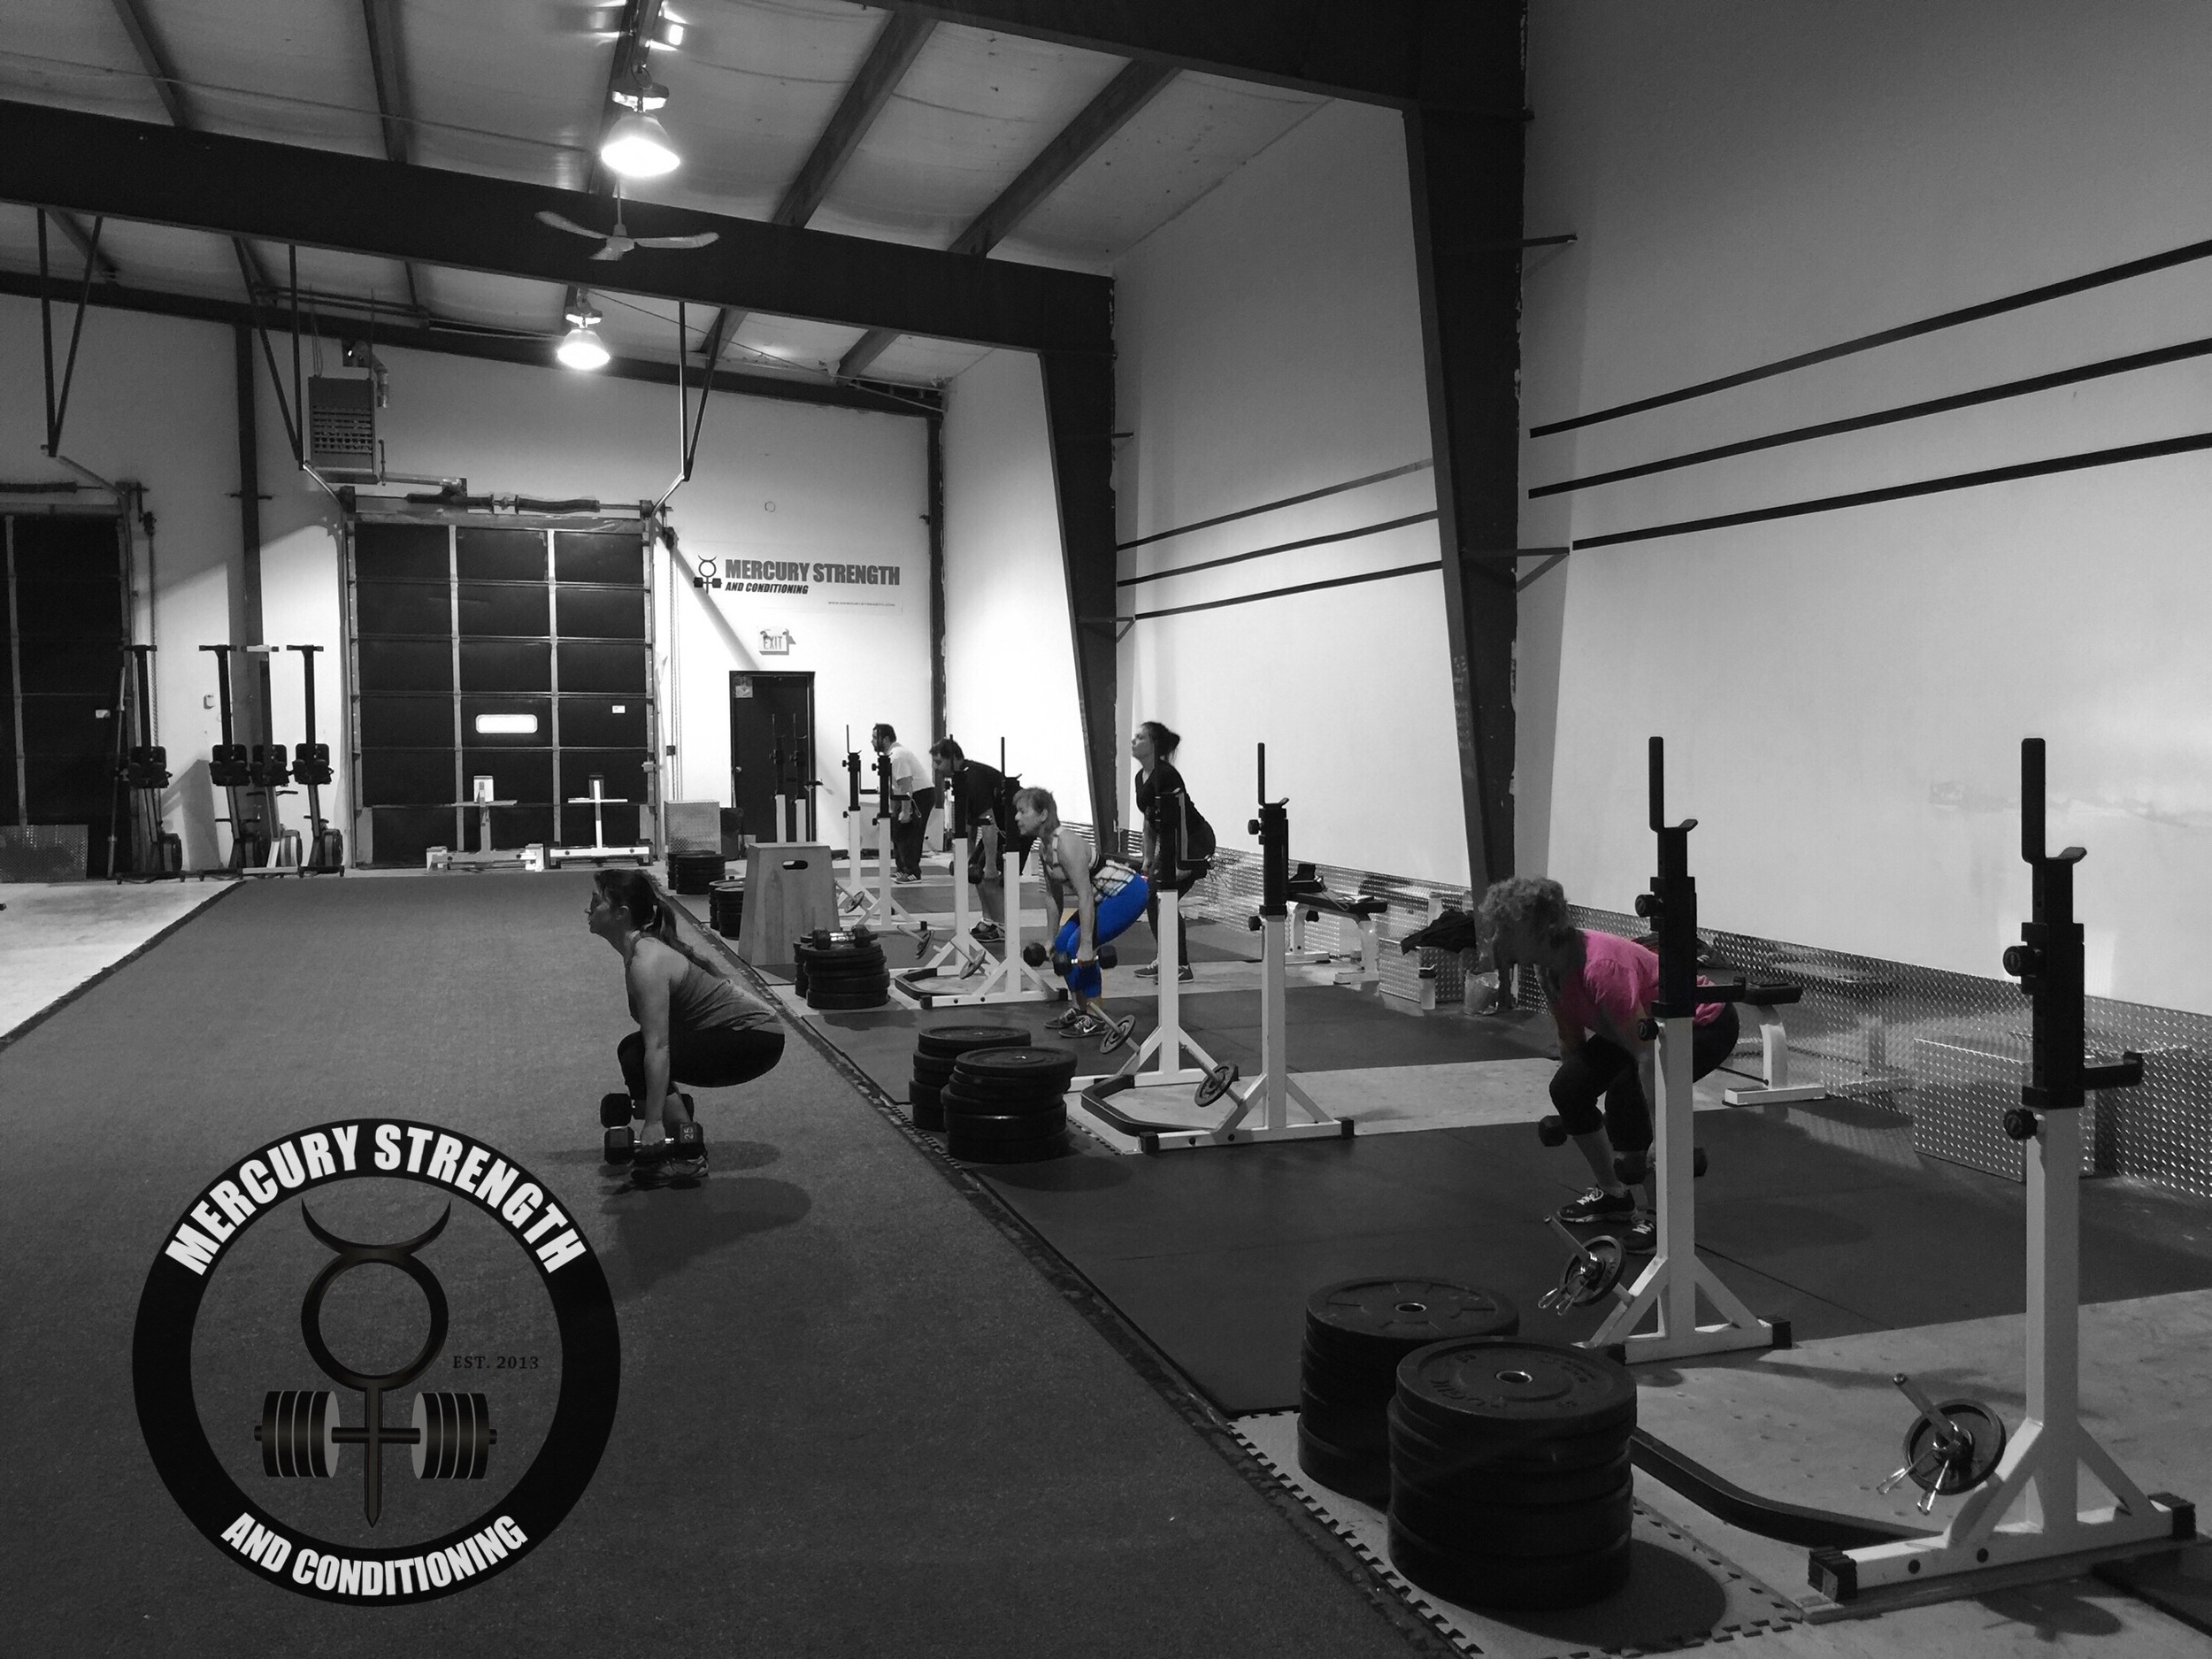 The 06:30 crew playing around with some dumbbells in yesterday's workout